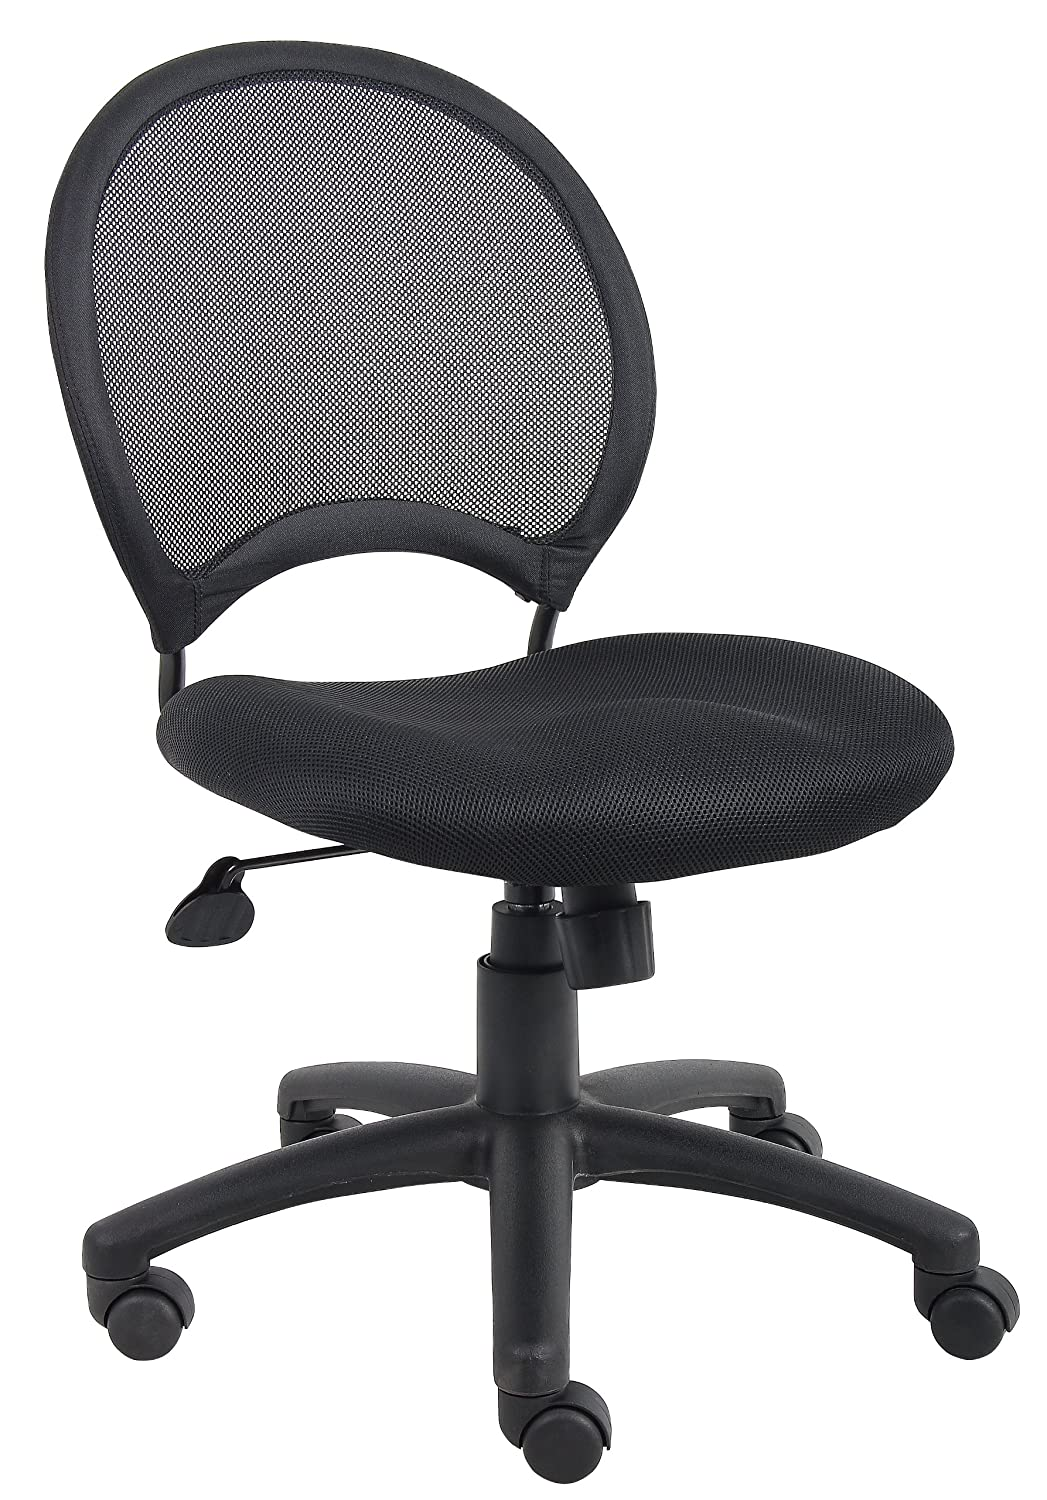 ergonomic chair without arms office mat boss b6215 mesh task chairs find sale